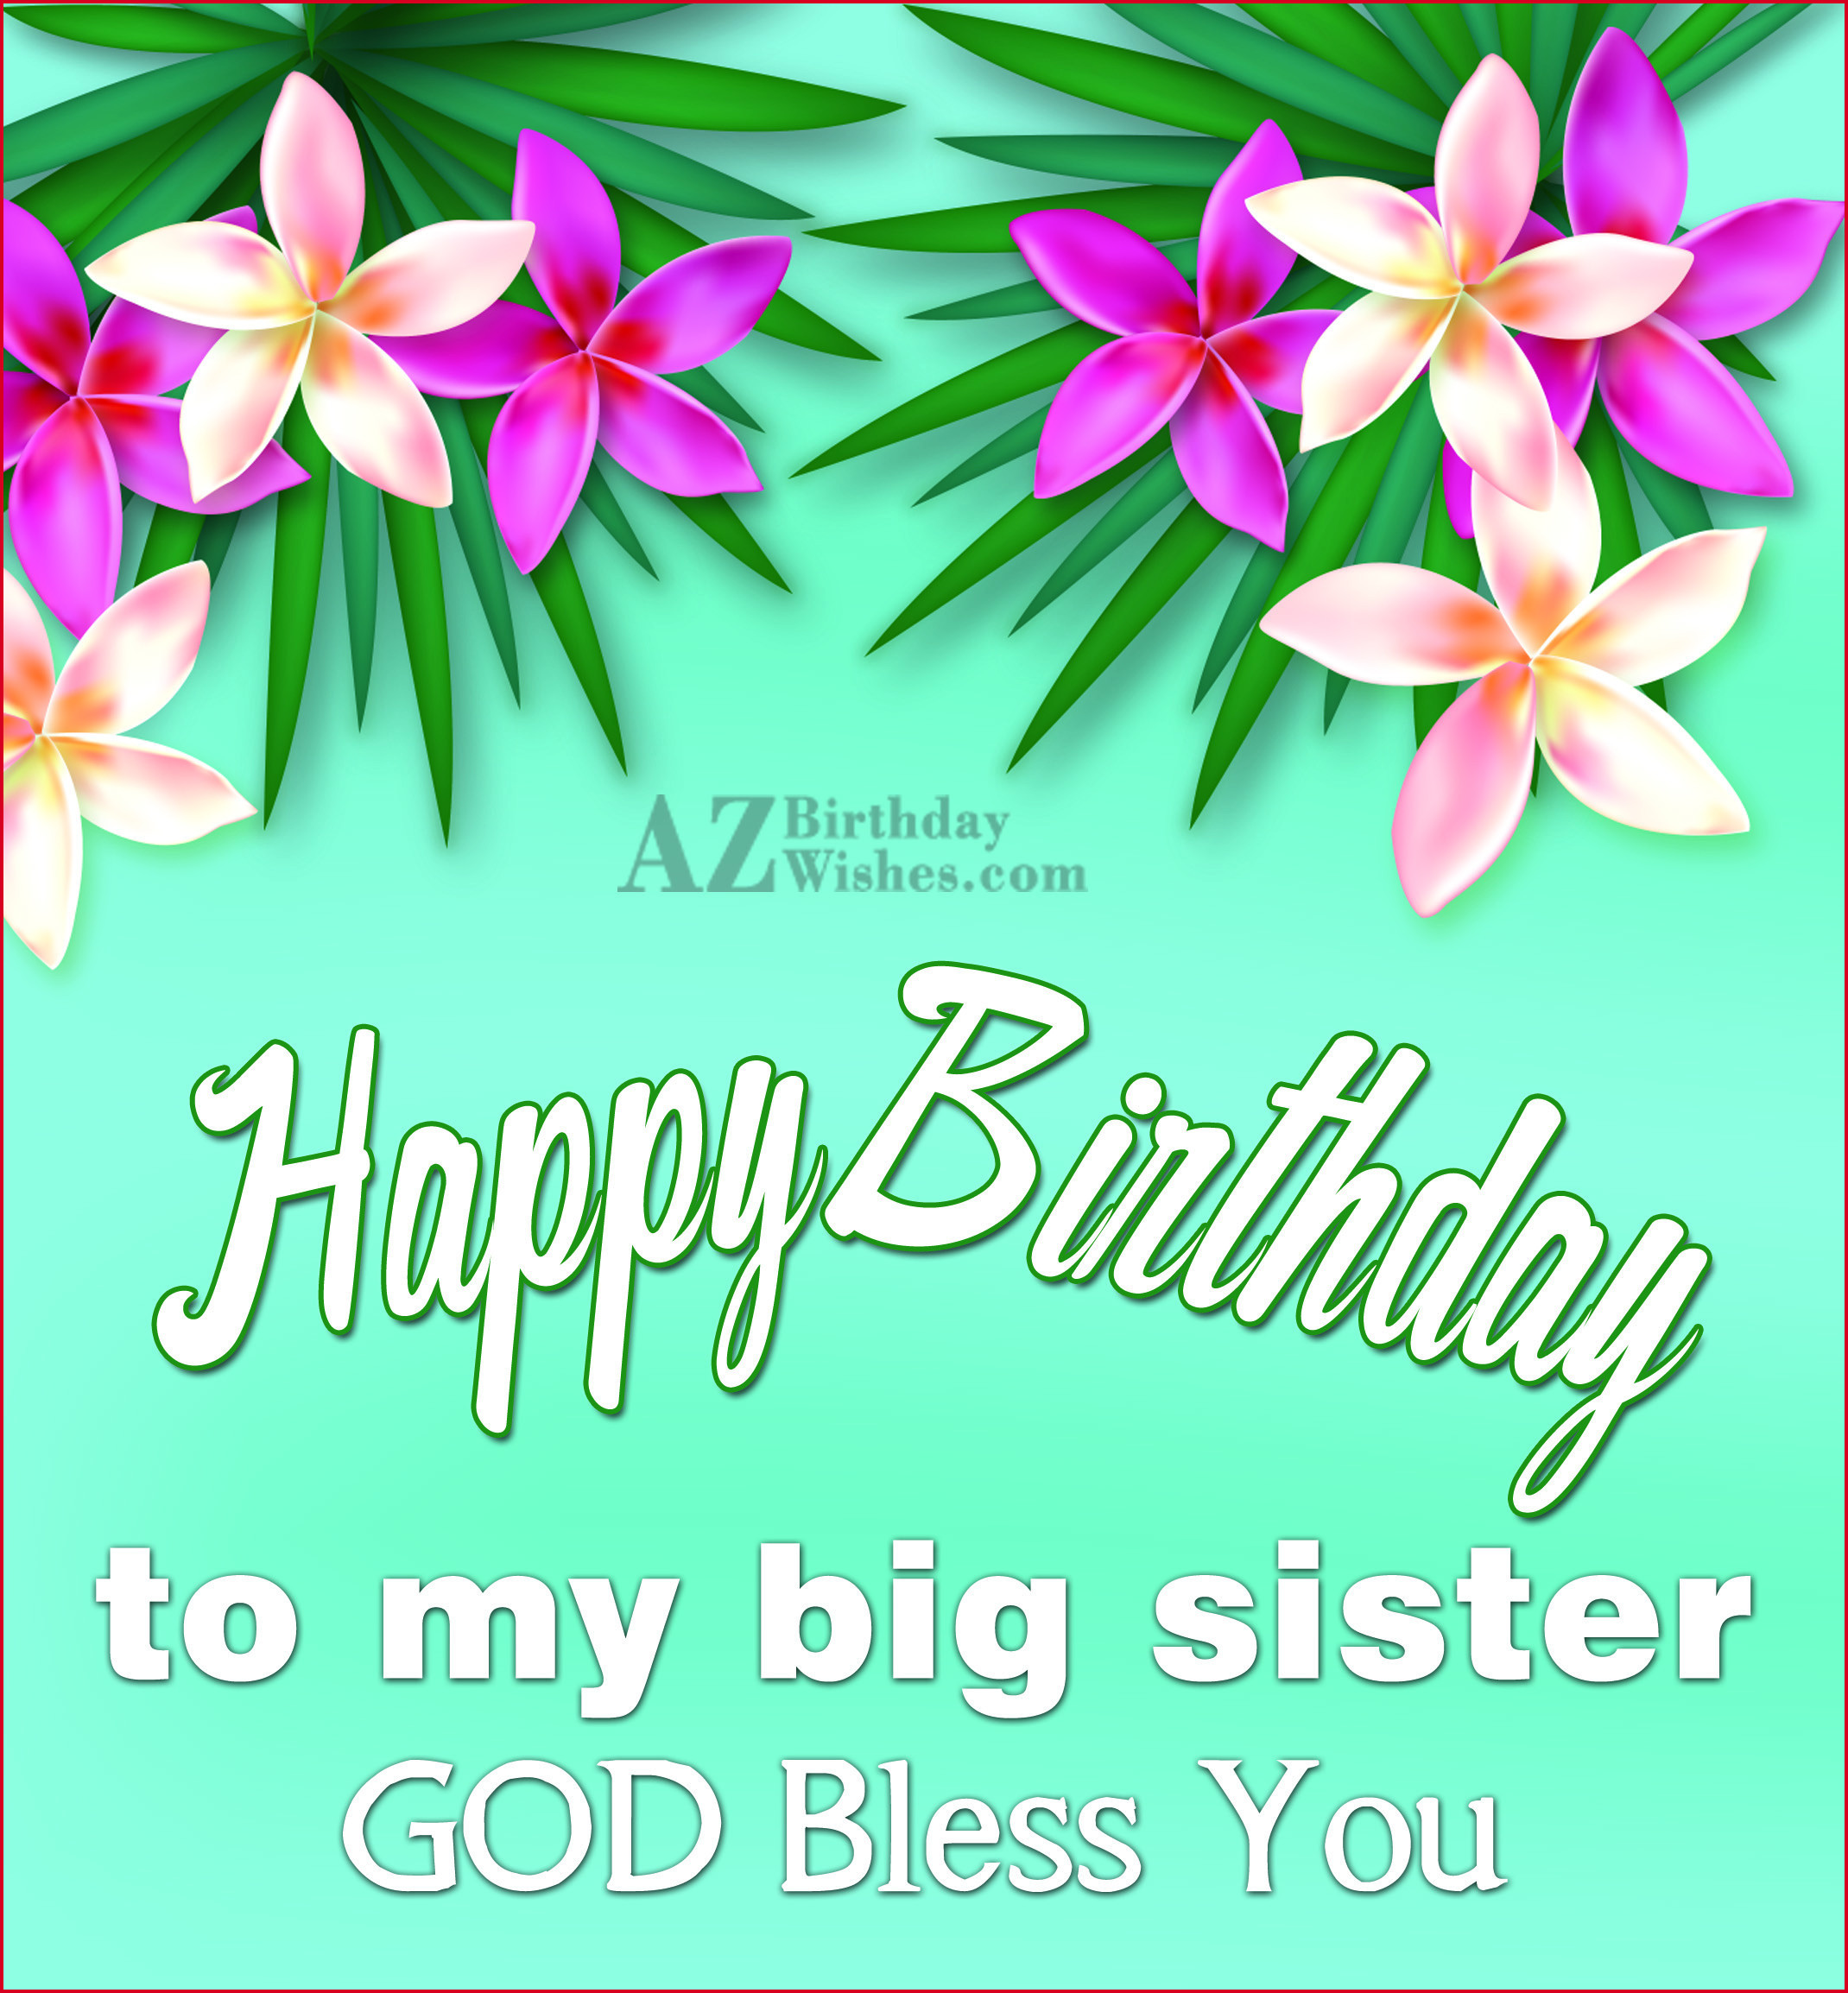 Happy birthday my dear sweet sister images